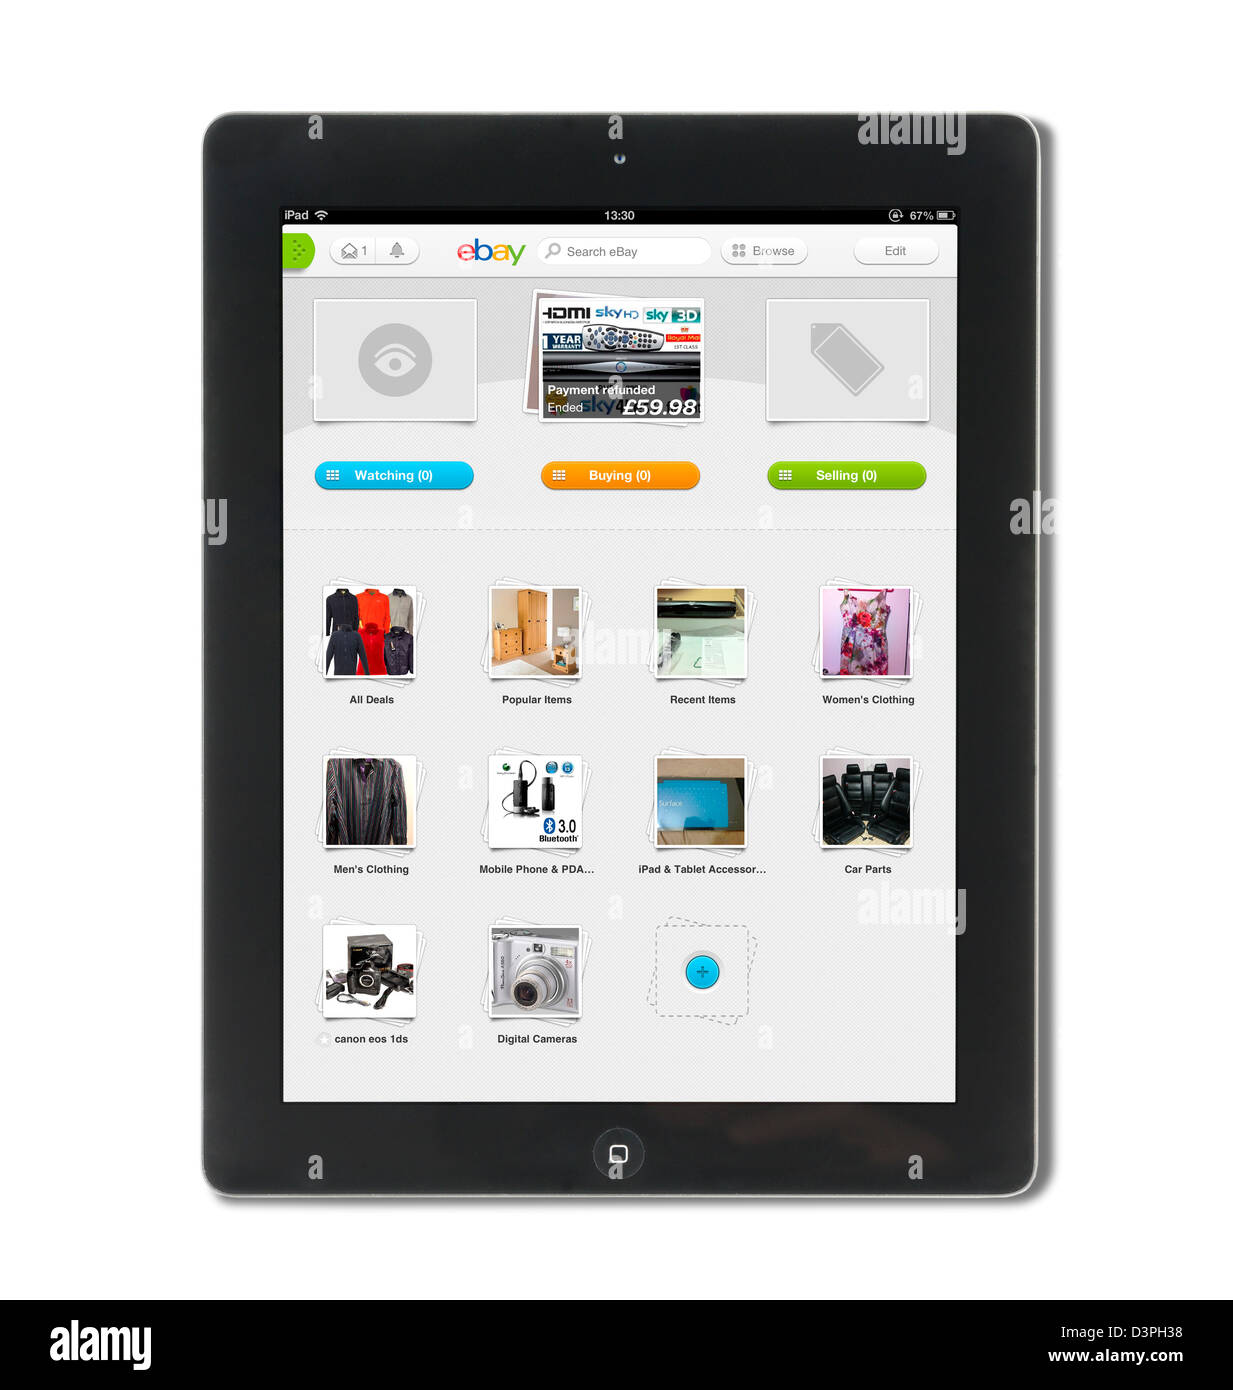 Looking at one's account page with the ebay app on a 4th generation Apple iPad, UK - Stock Image